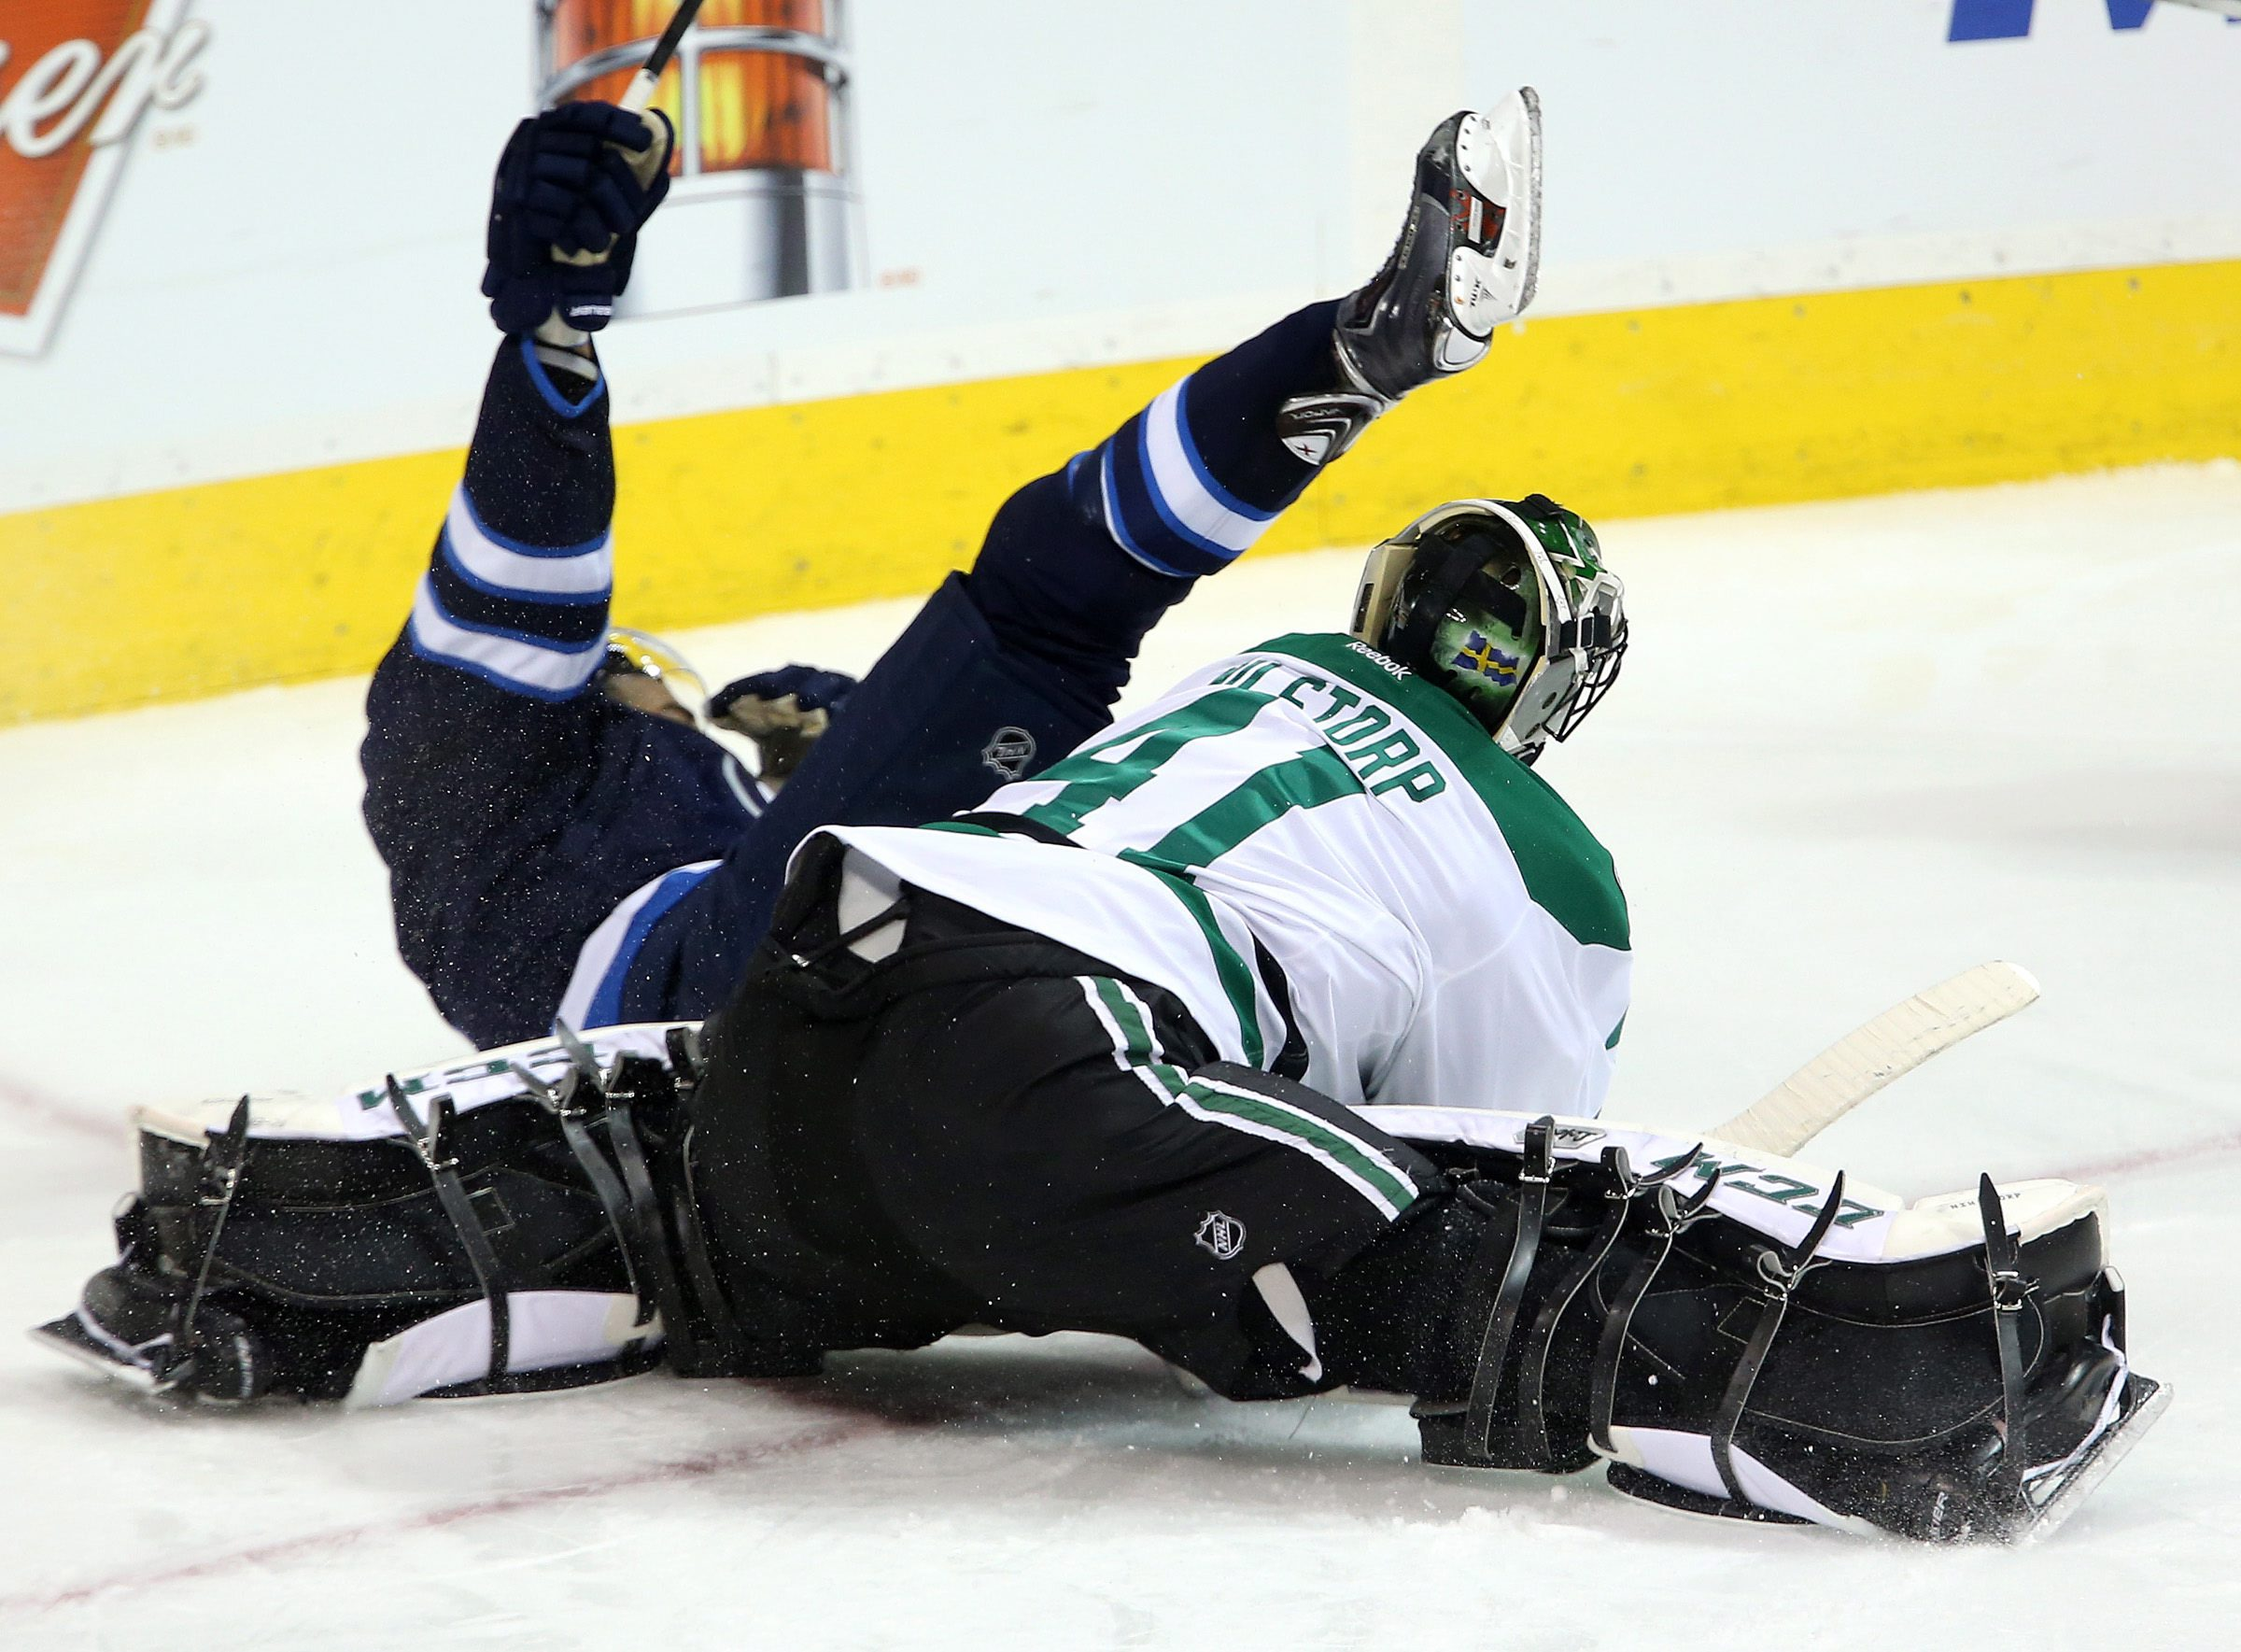 Winnipeg Jets' Evander Kane (9) celebrates his goal while crashing to the ice after beating Dallas Stars' Cristopher Nilstorp (41) during third period NHL hockey action at MTS Centre in Winnipeg, Manitoba, Sunday, March 16, 2014